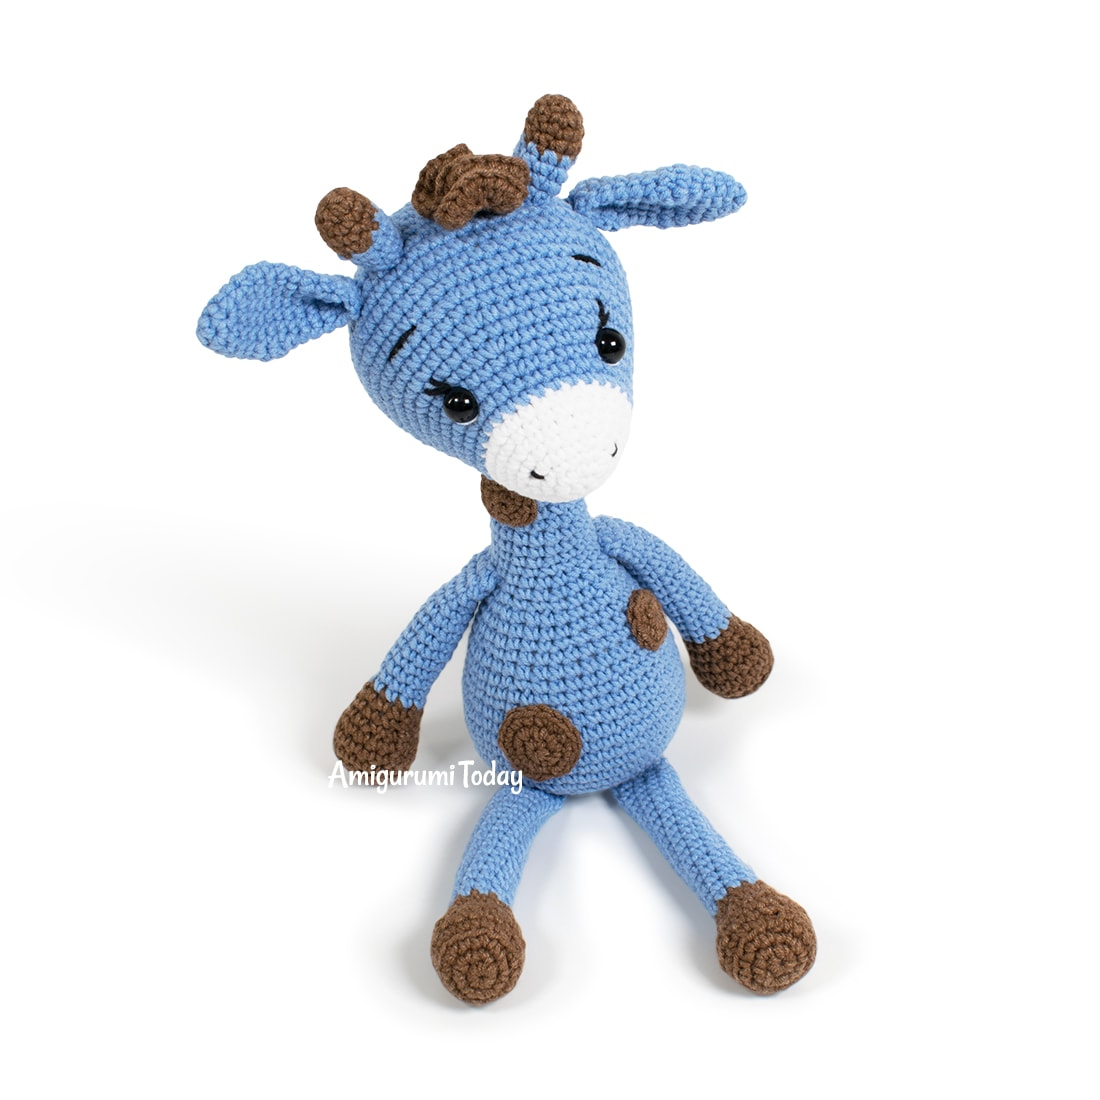 Free Blue Giraffe amigurumi pattern designed by Amigurumi Today